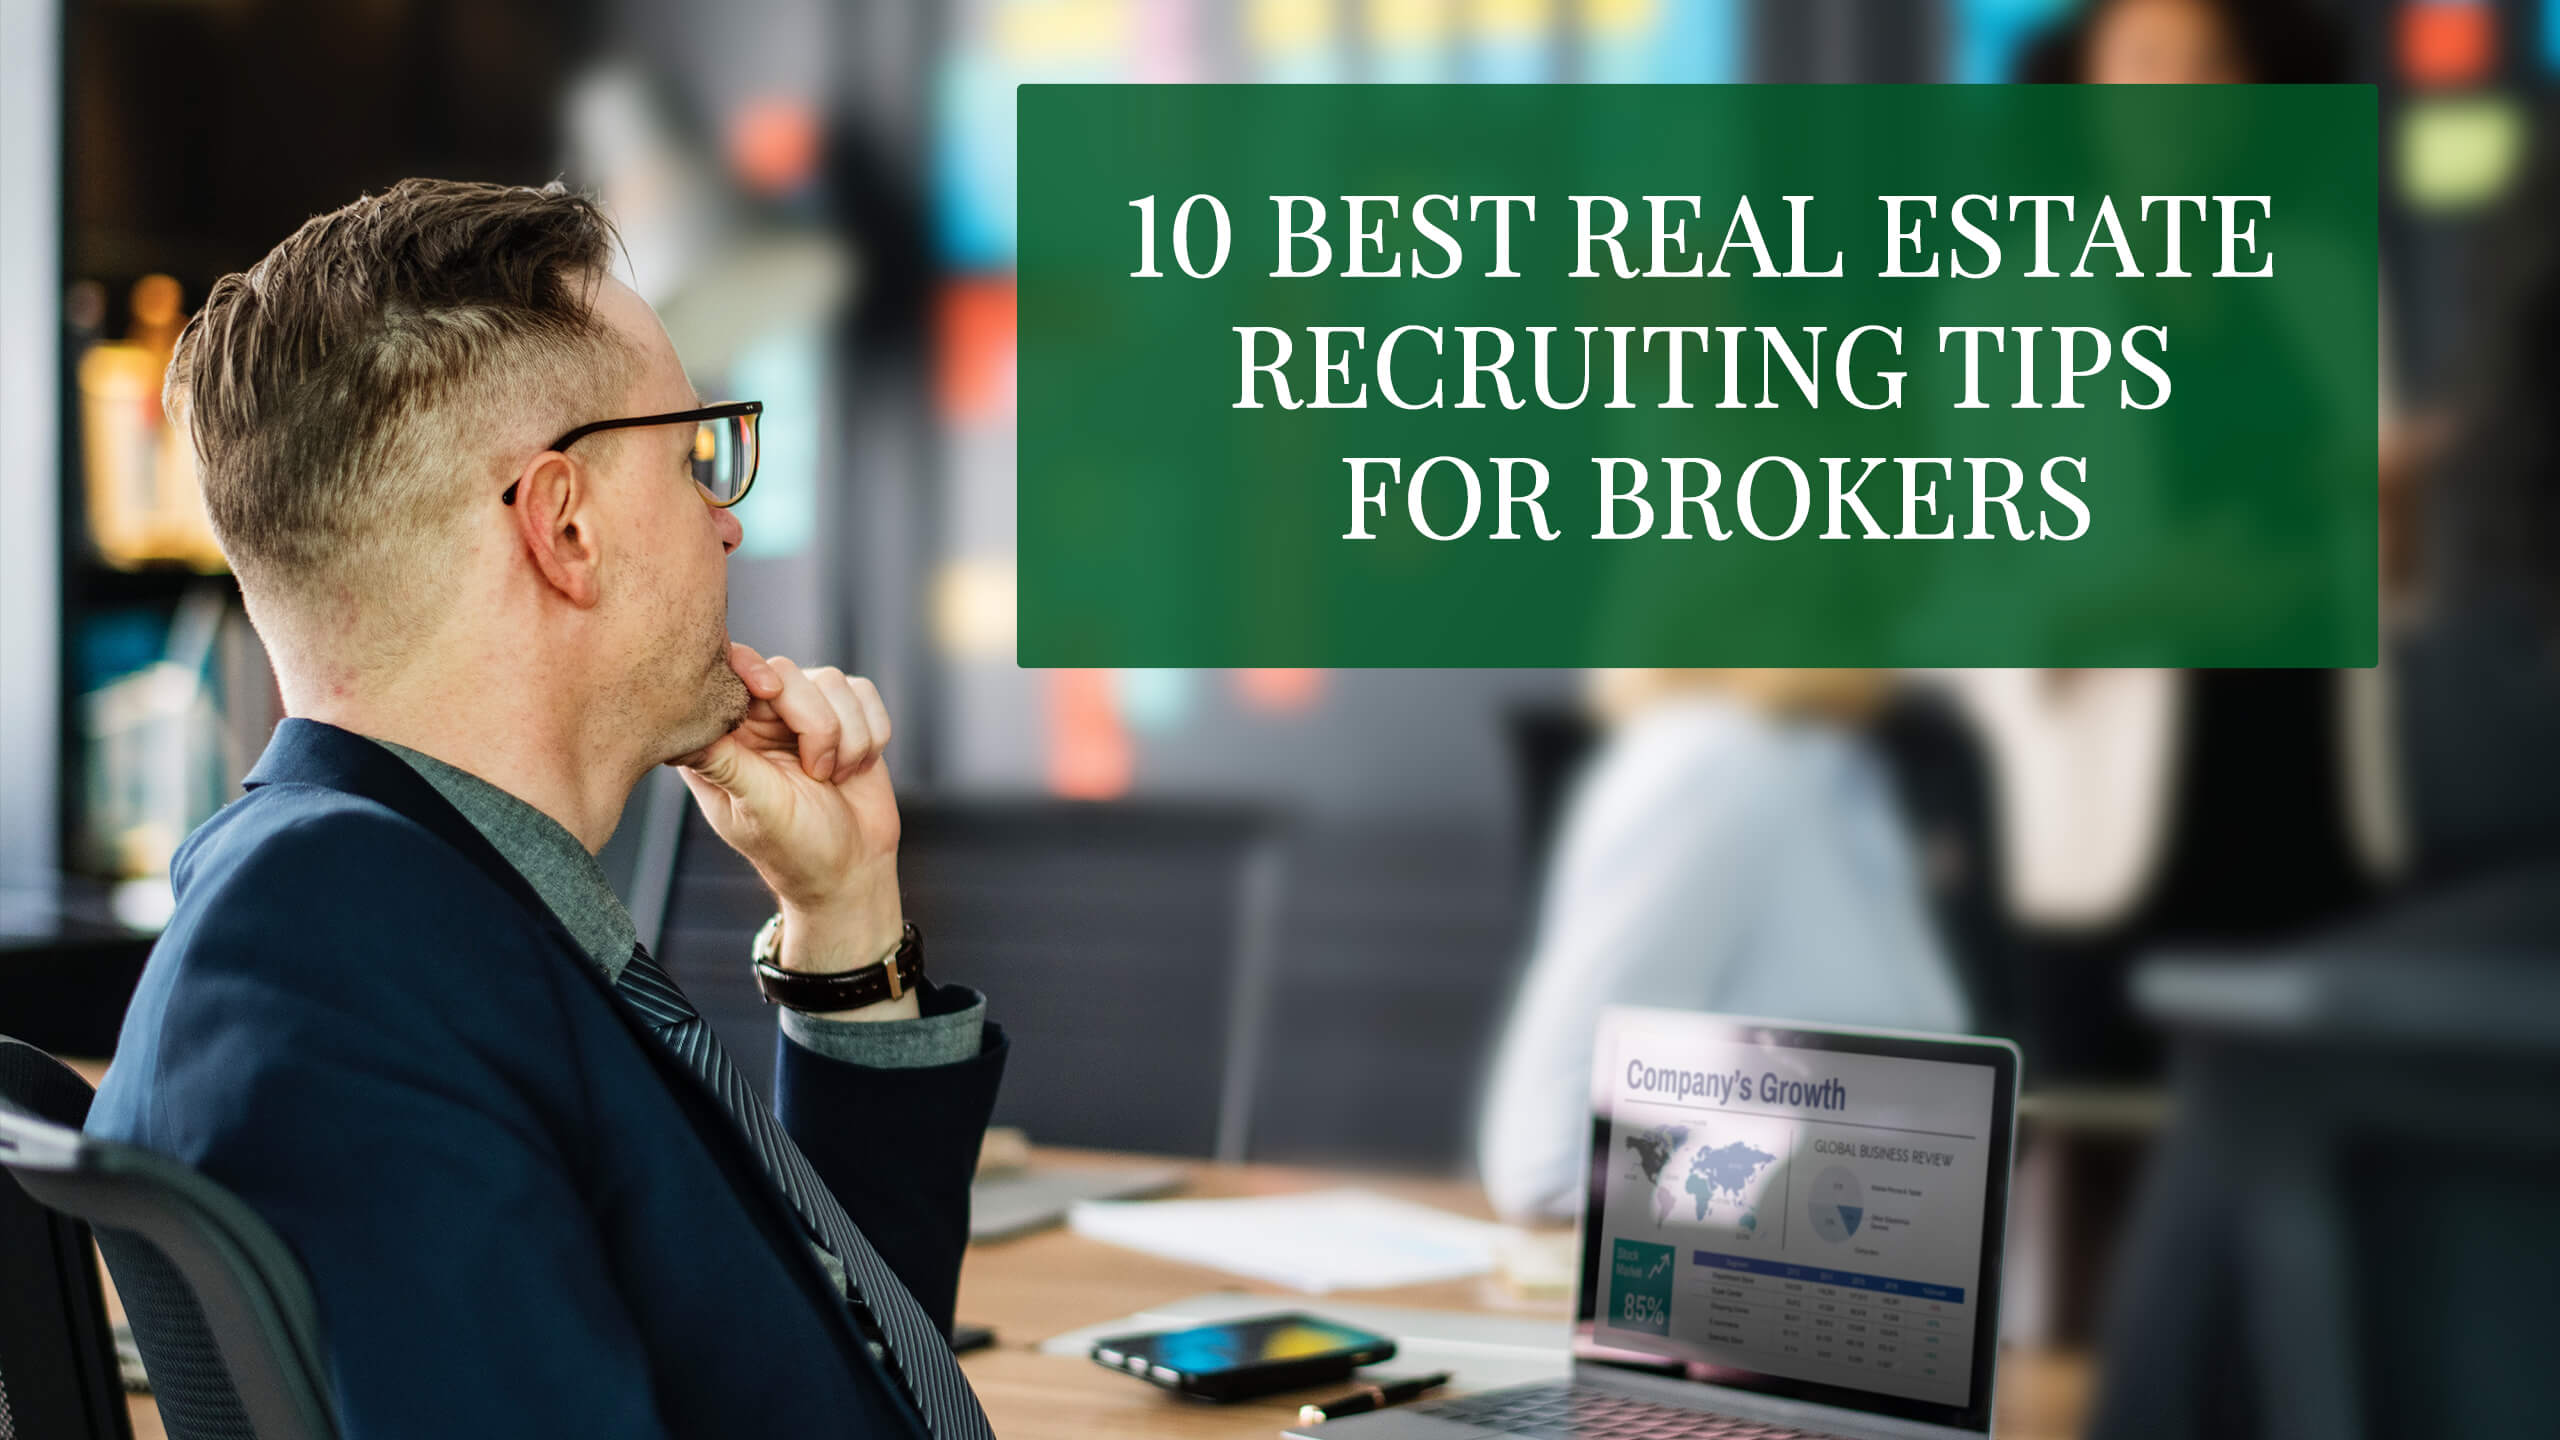 10 Best Real Estate Recruiting Tips for Brokers